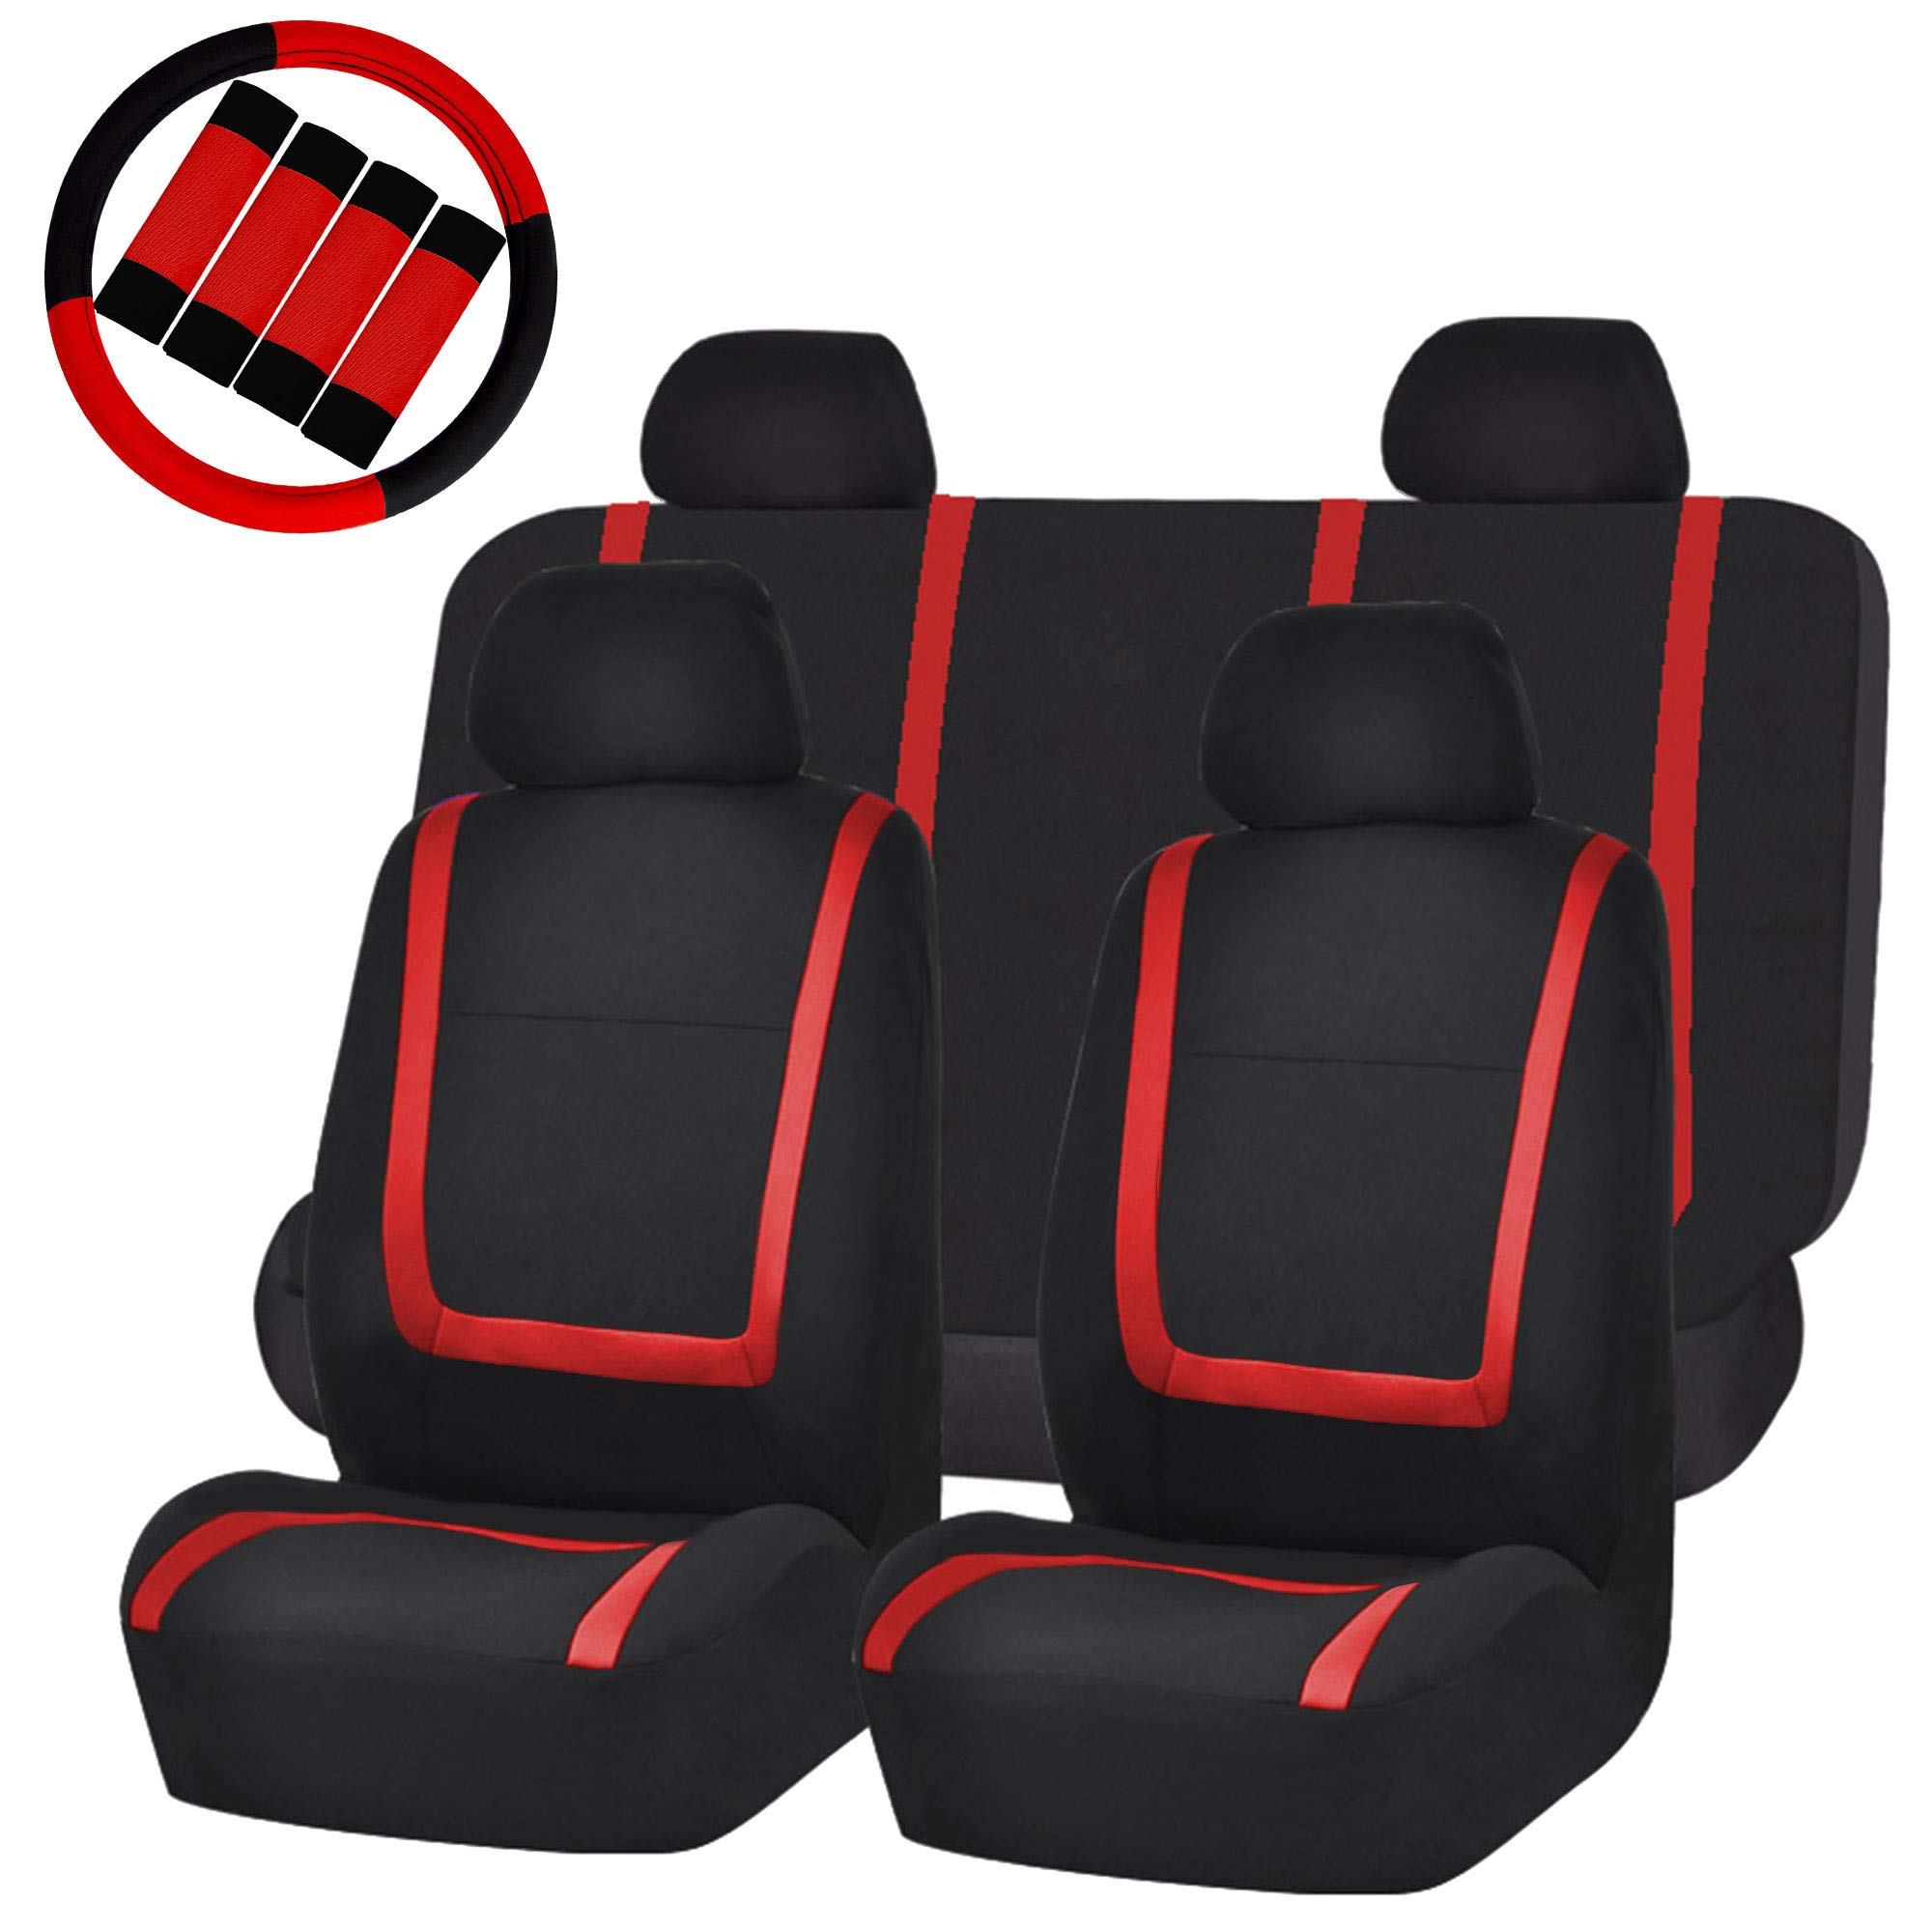 FH Group FB032114 Unique Flat Cloth Car Seat Covers w. Steering Wheel Cover and seat Belt Pads, Red/Black Color- Fit Most Car, Truck, SUV, or Van